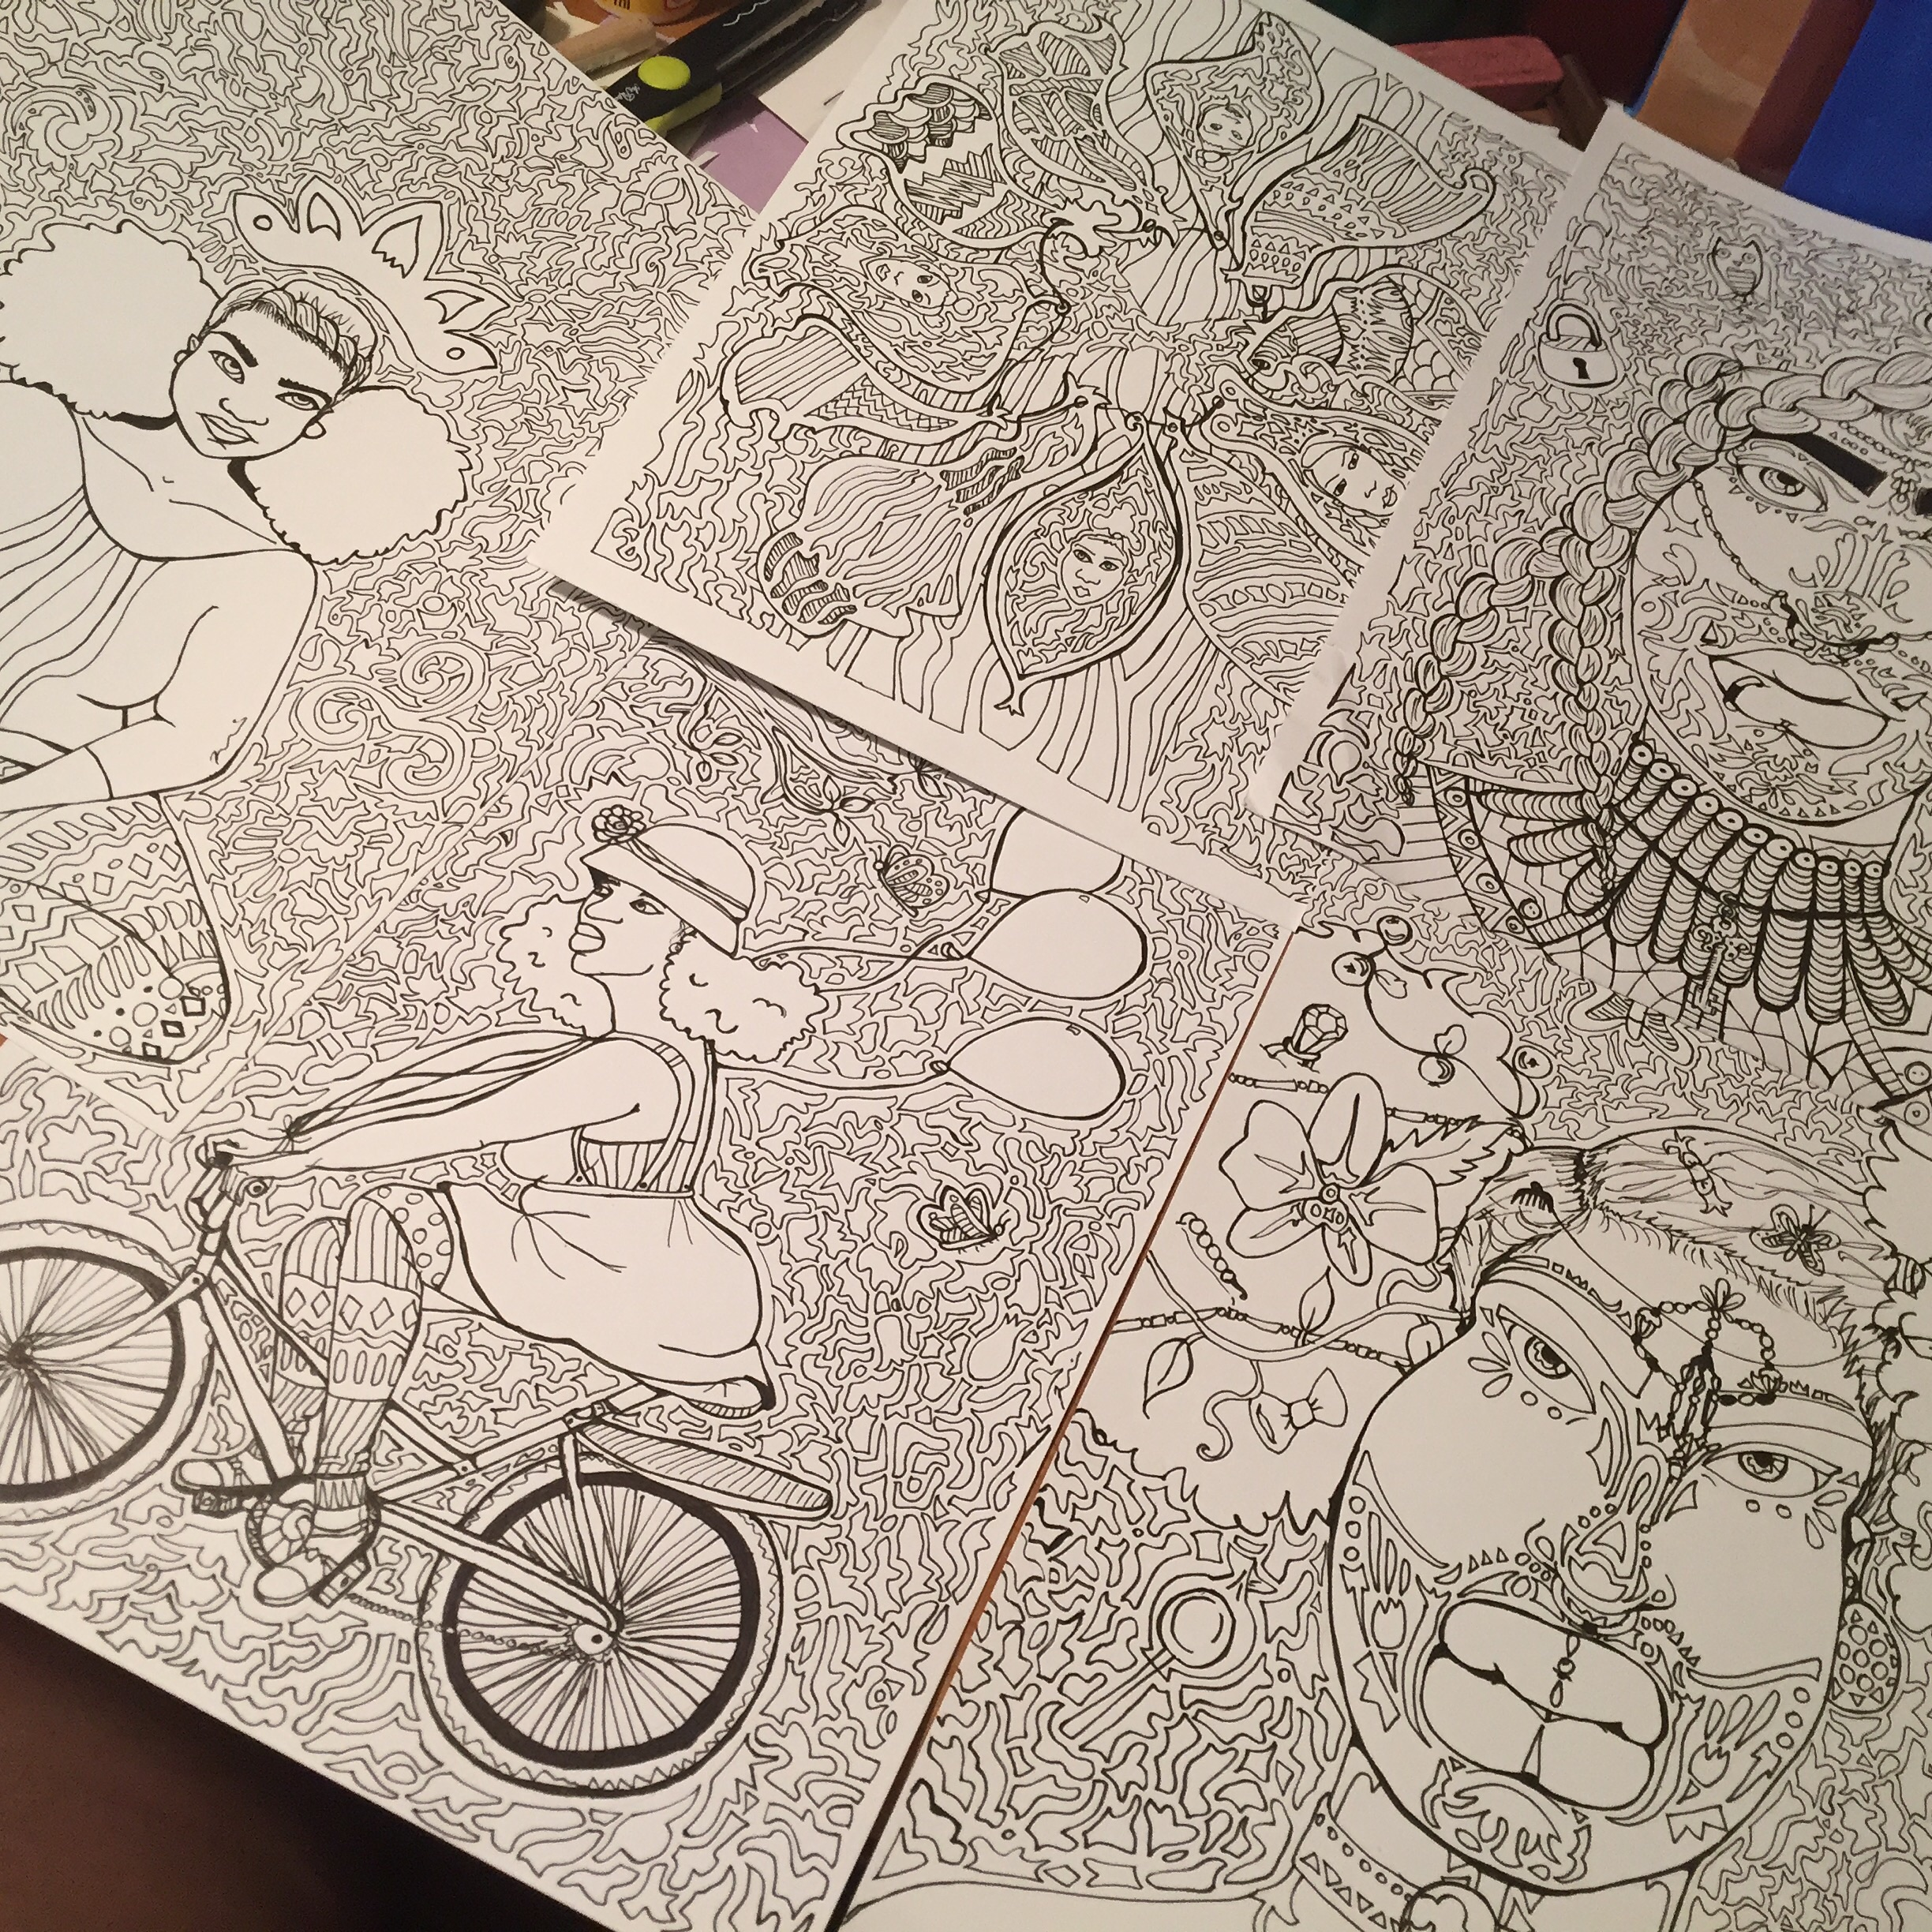 A glimpse at a few finished pages...